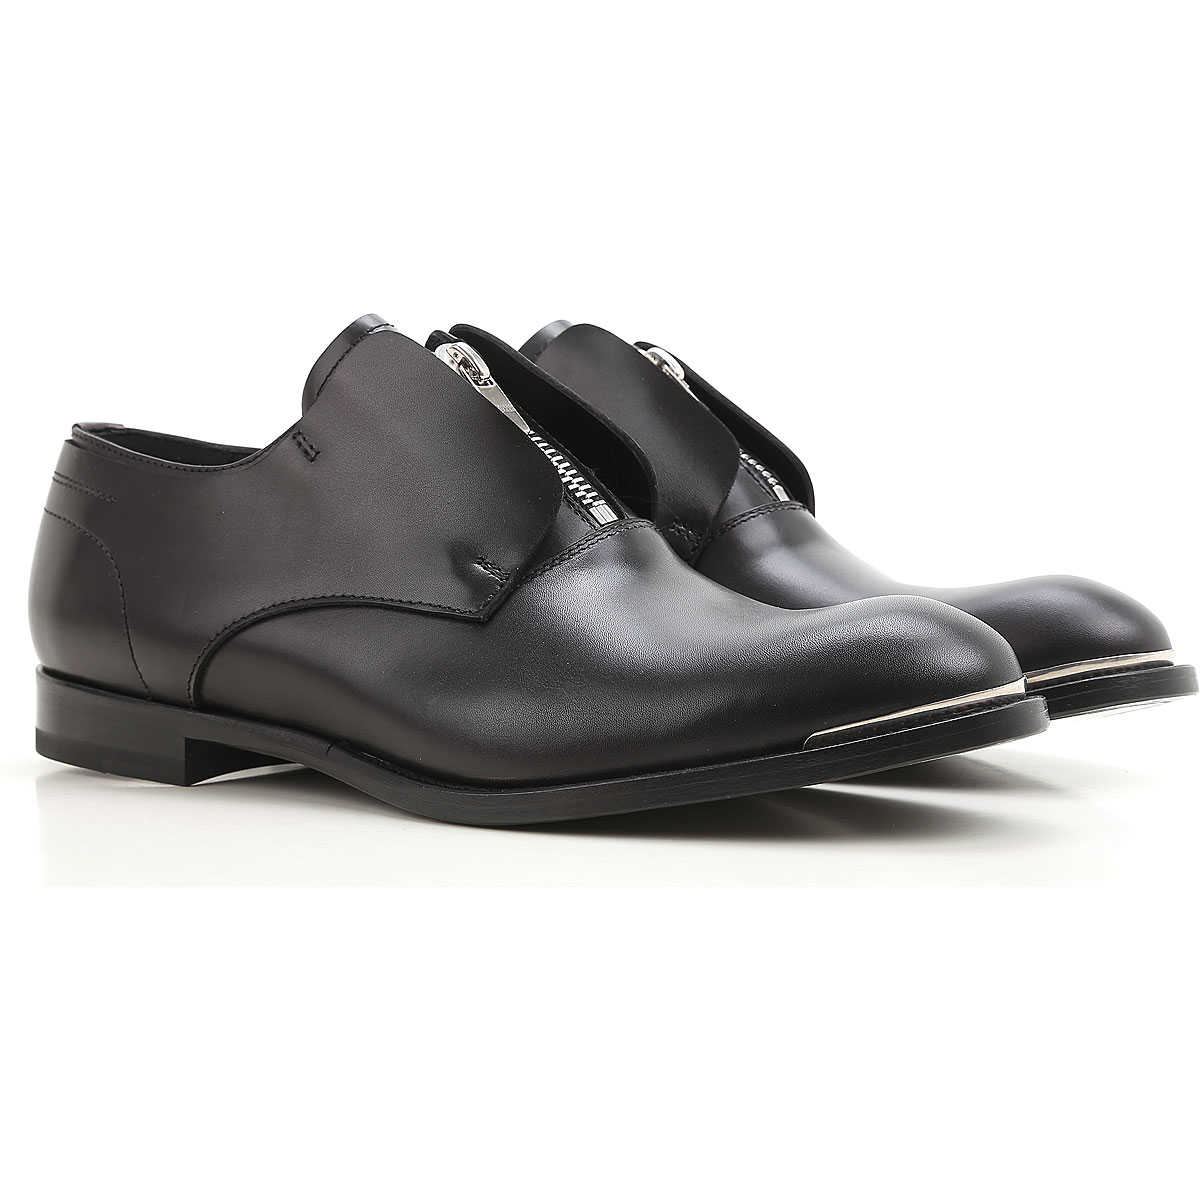 Alexander McQueen Loafers for Men On Sale in Outlet